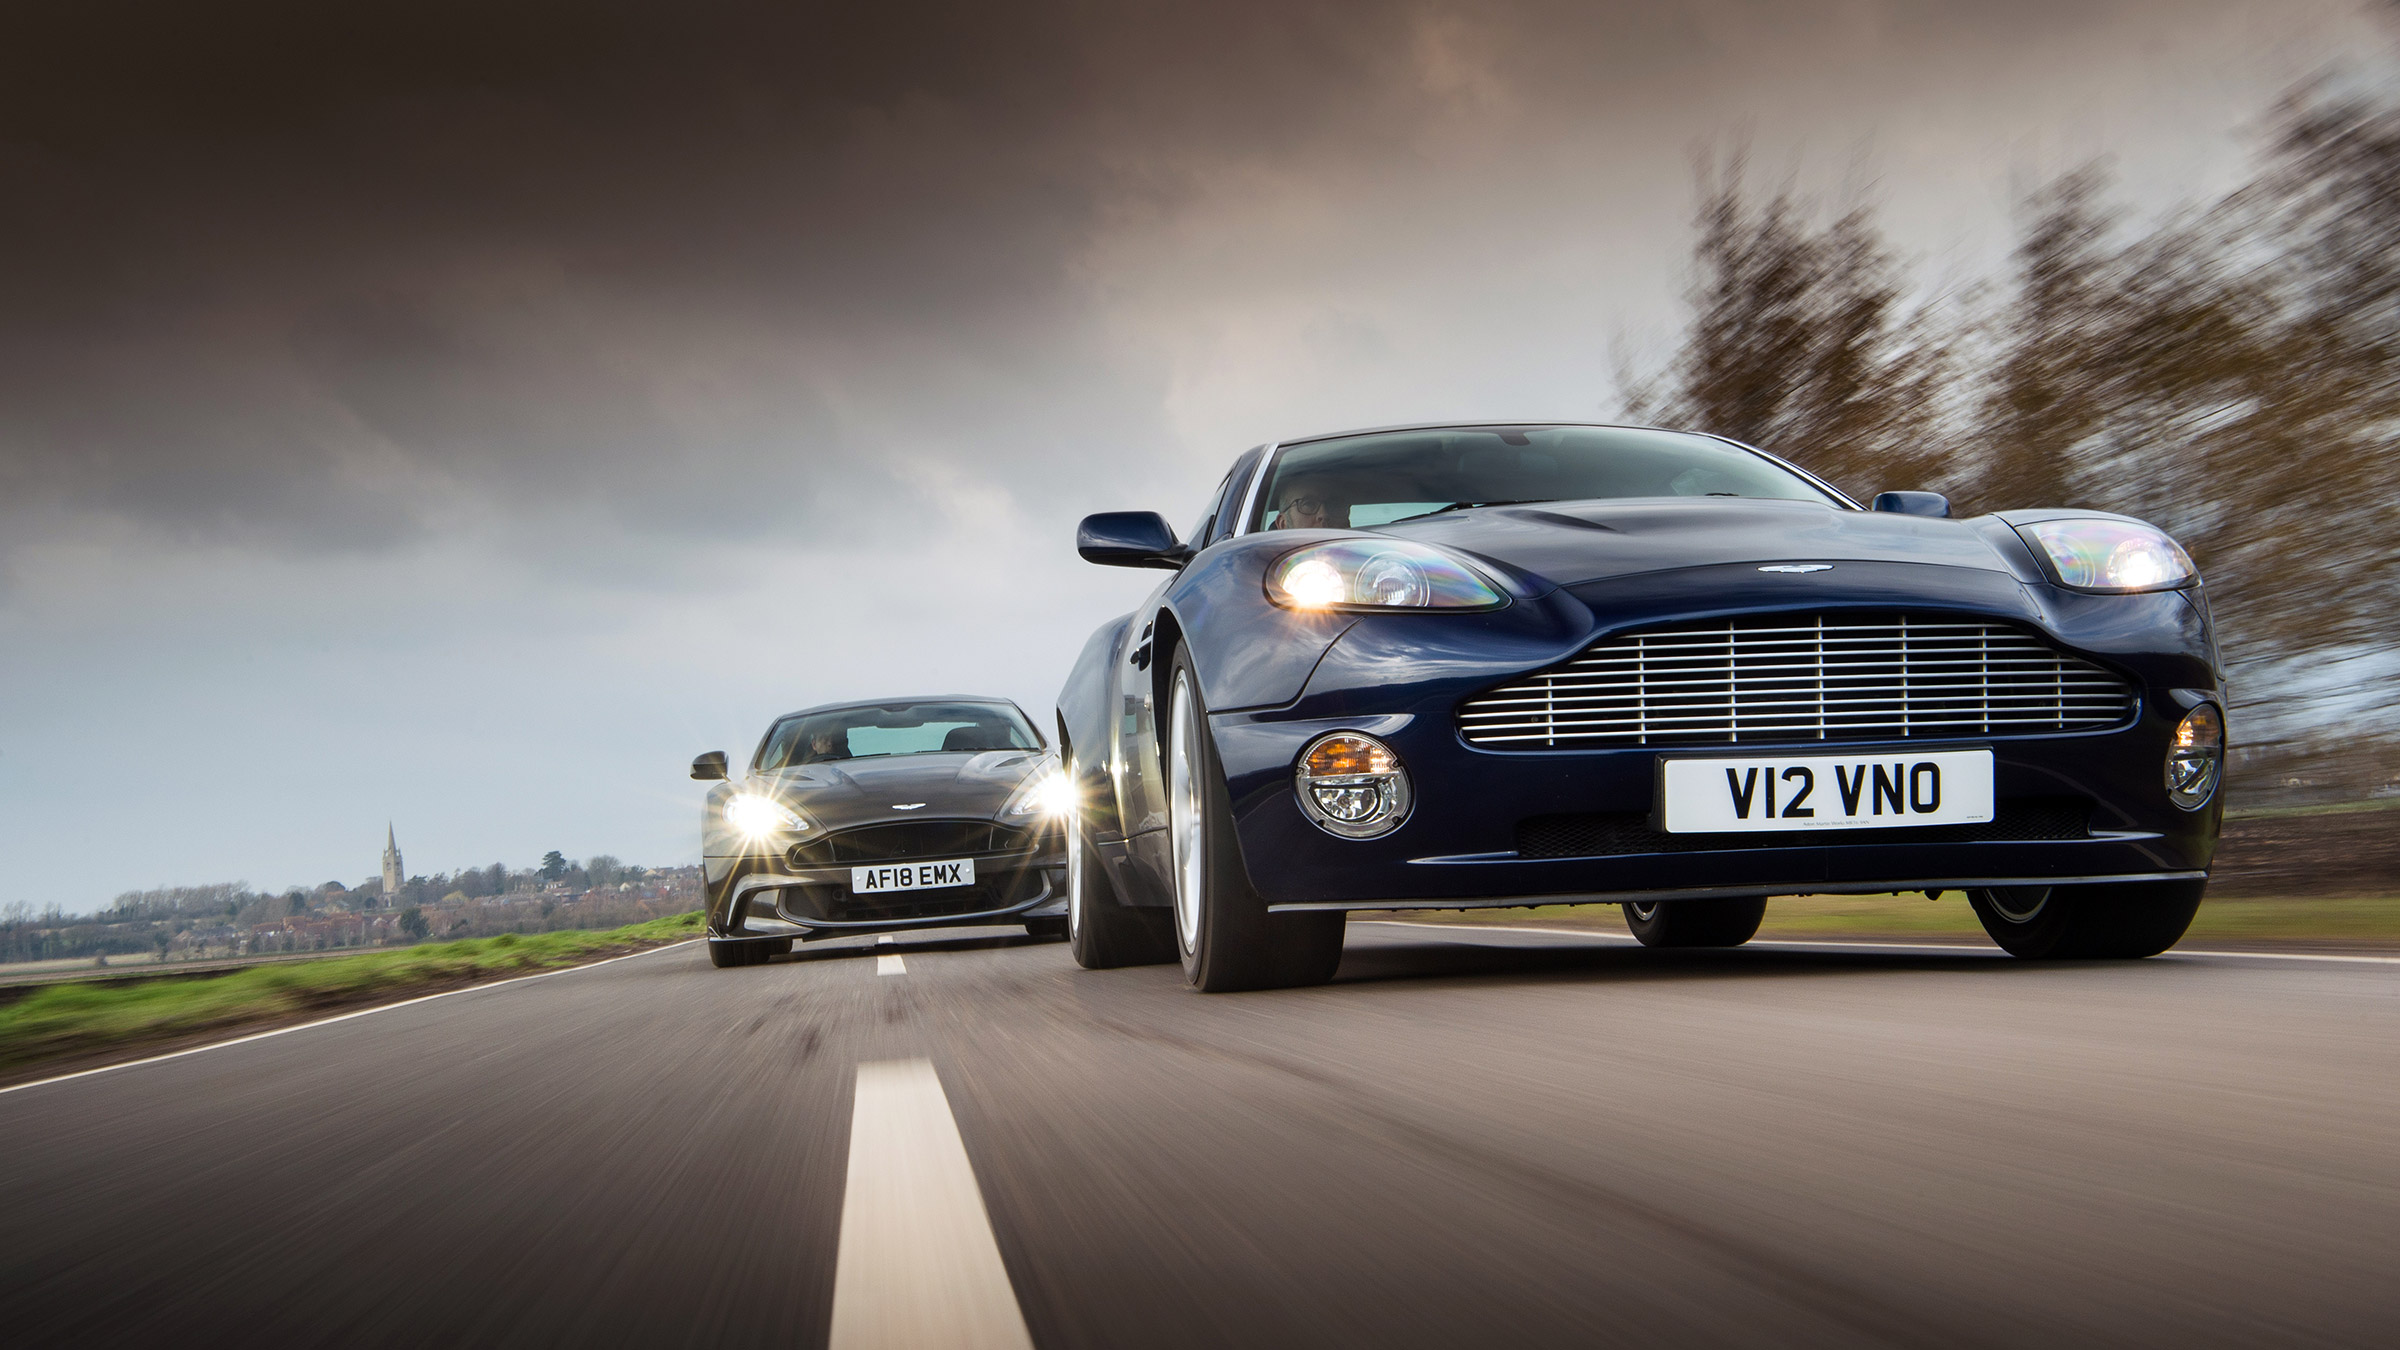 Vanquishing Point The First And Last Aston Martin Vanquish Models Go Head To Head Evo